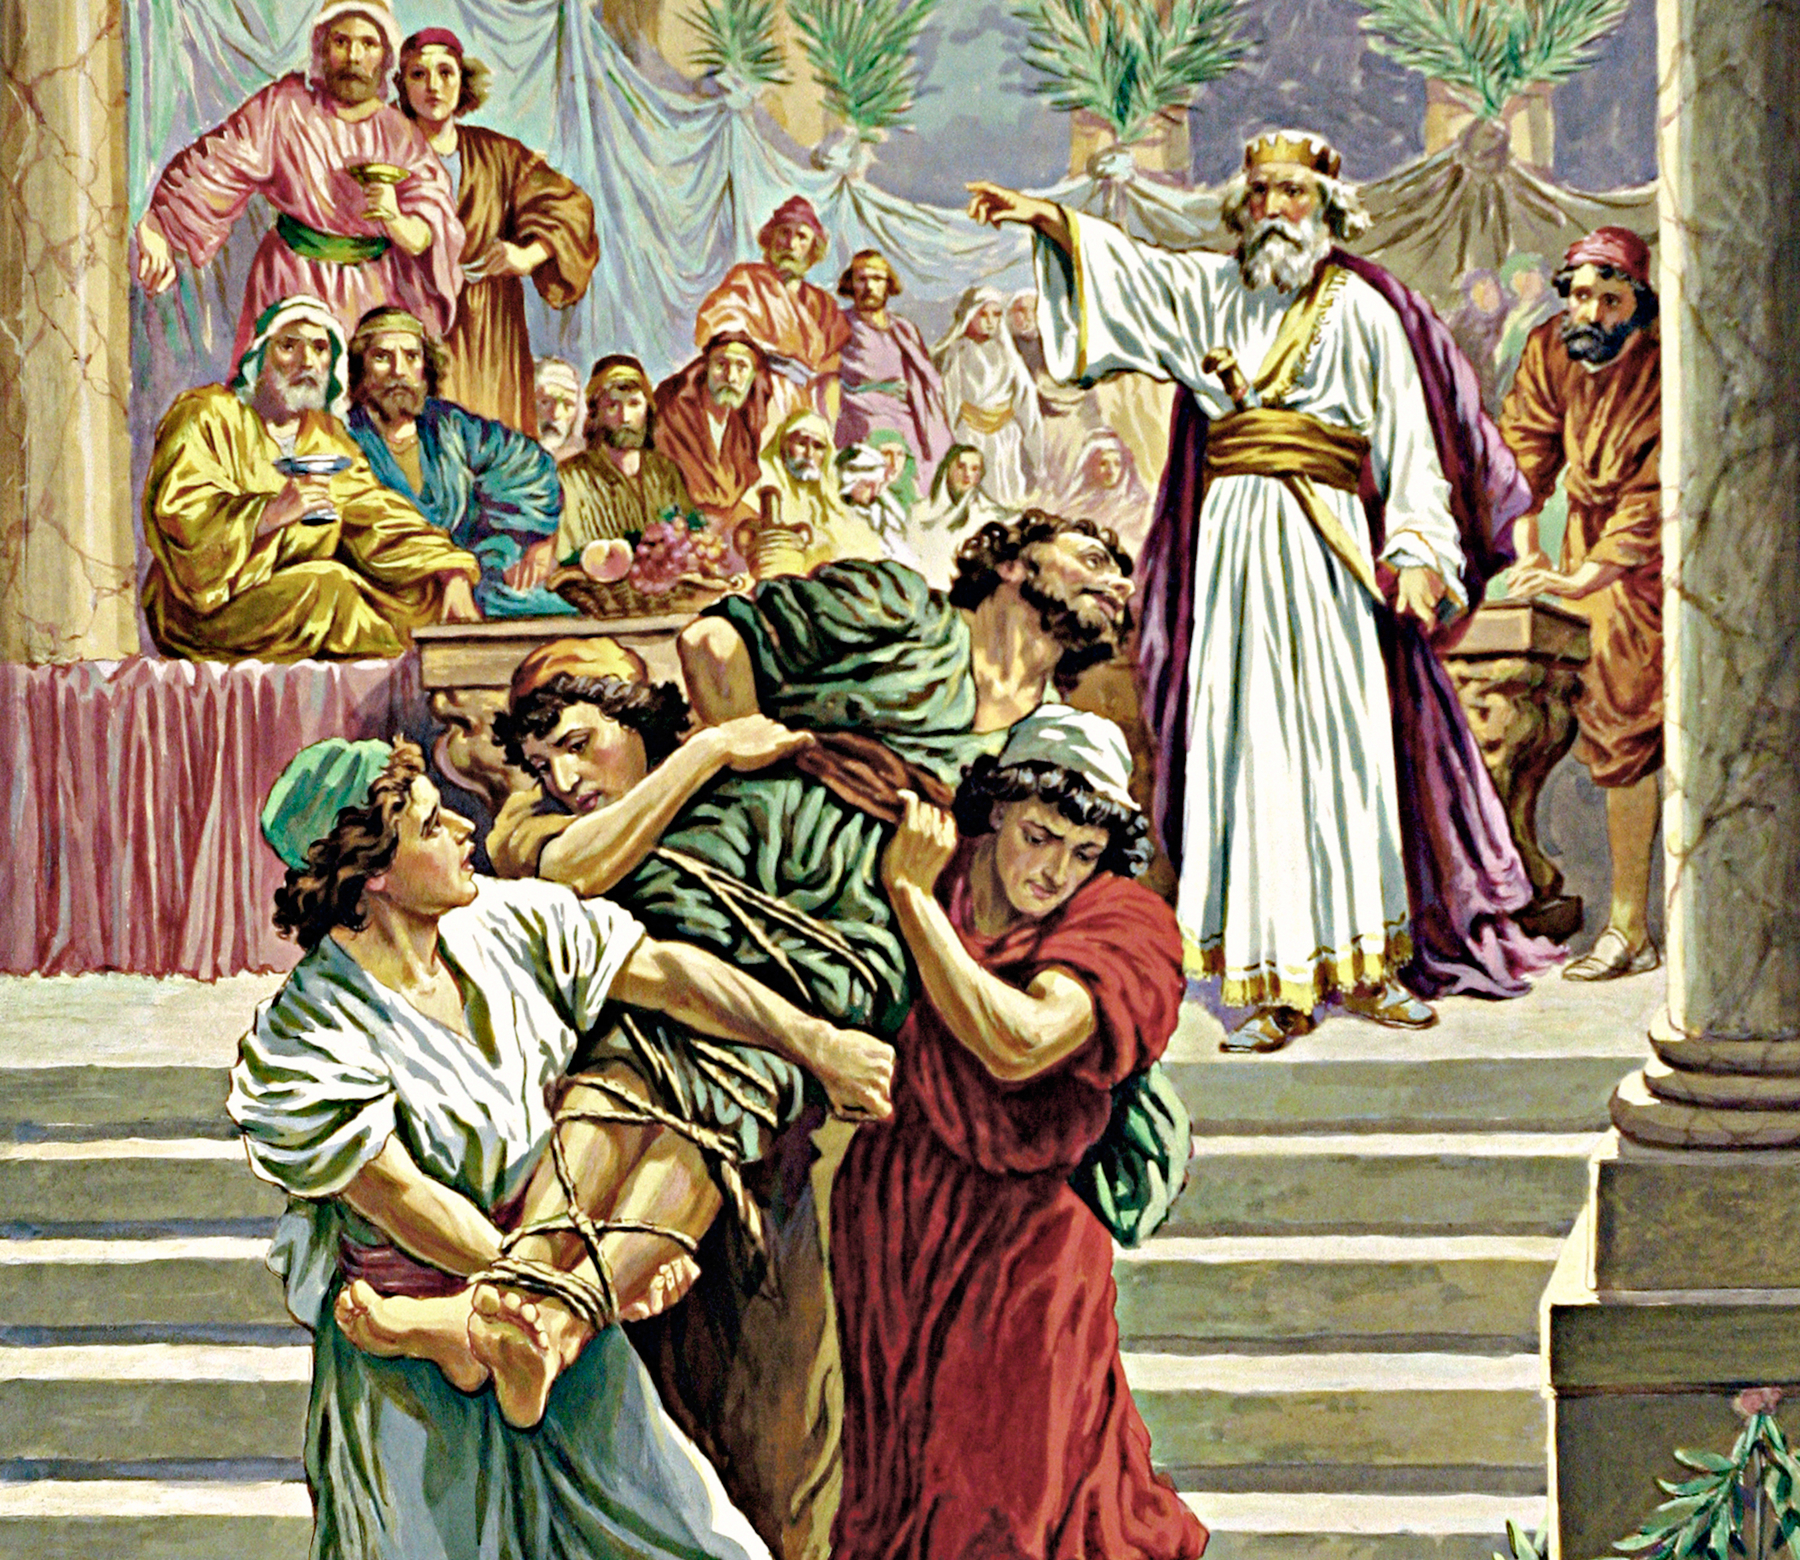 Lessons From the Parables: Matthew 22 - The Invitation to the Wedding Feast  | United Church of God